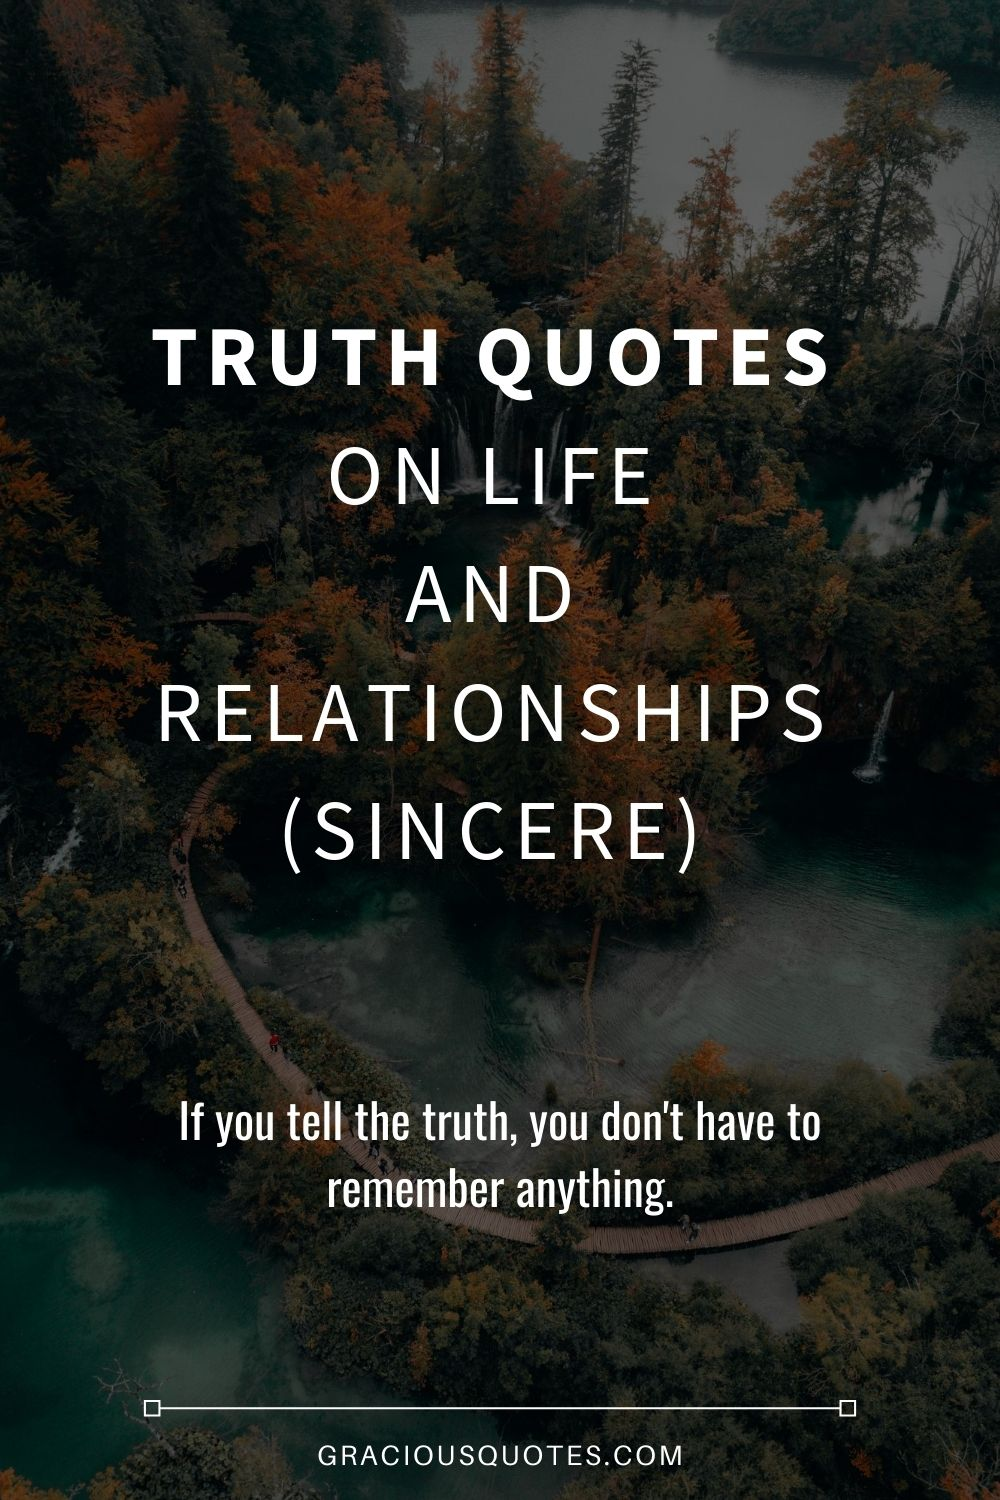 87 Truth Quotes On Life And Relationships Sincere